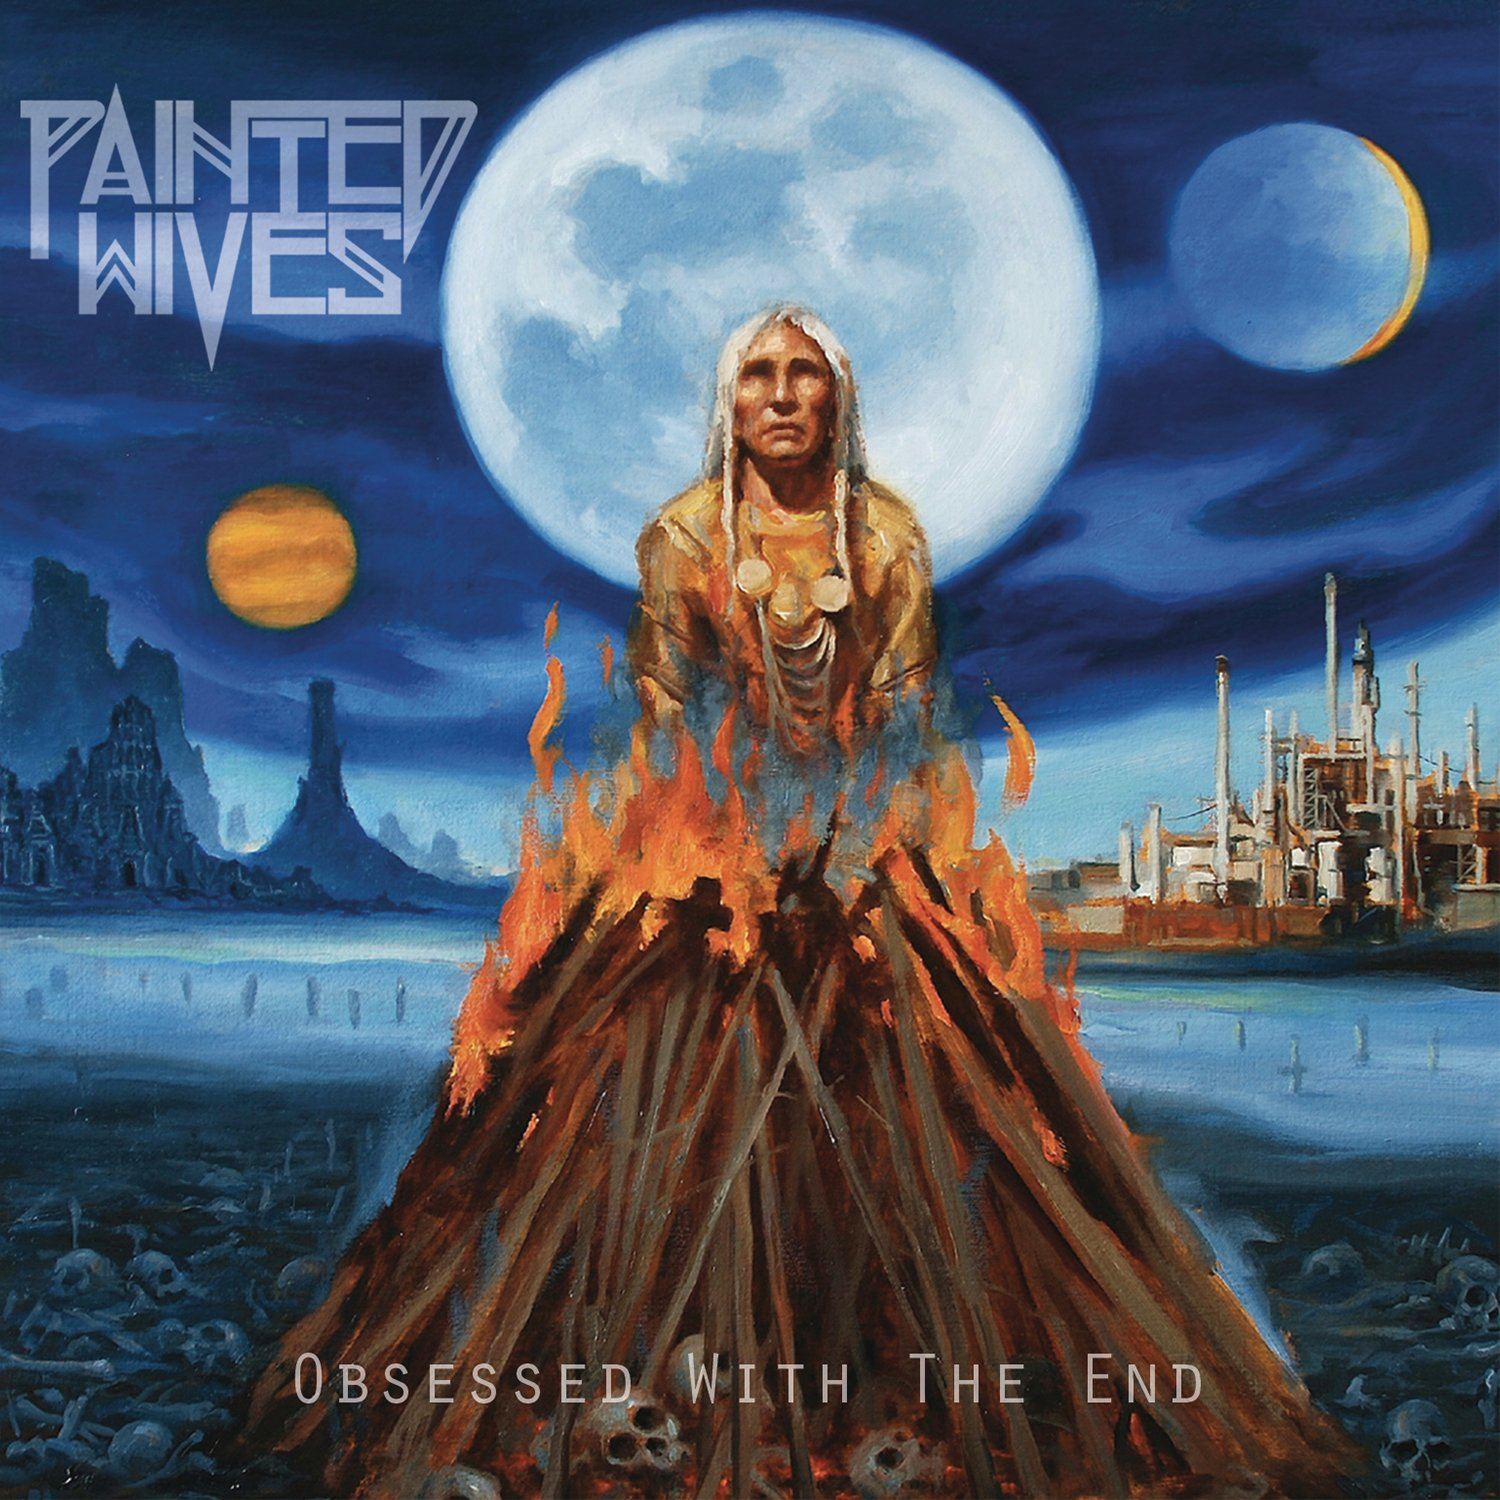 CD : Painted Wives - Obsessed With The End (Digipack Packaging)